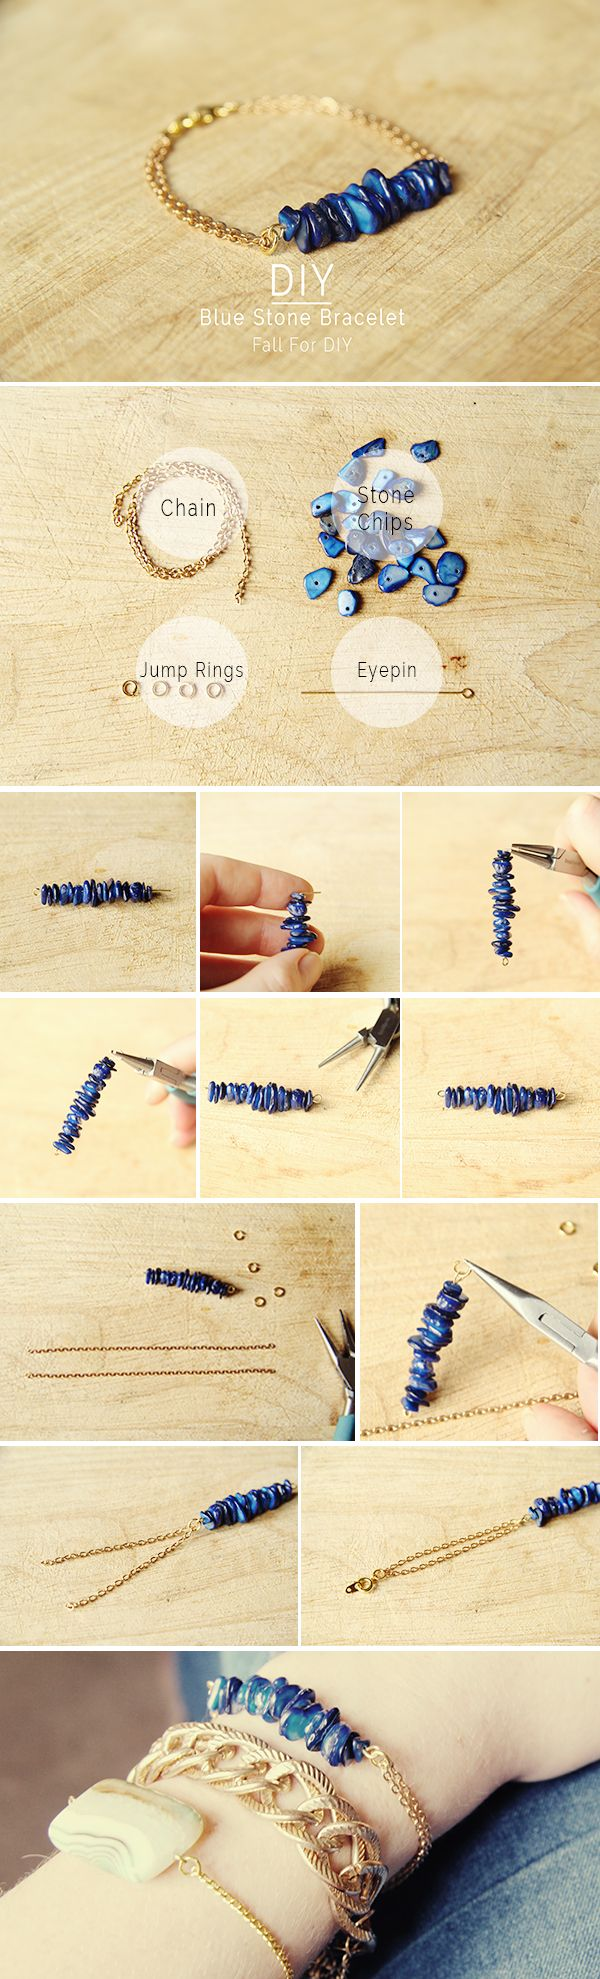 DIY Blue Stone Bracelet - love all 3 of these bracelets! #DIYJewelry #Jewelry #handmade #trends #style